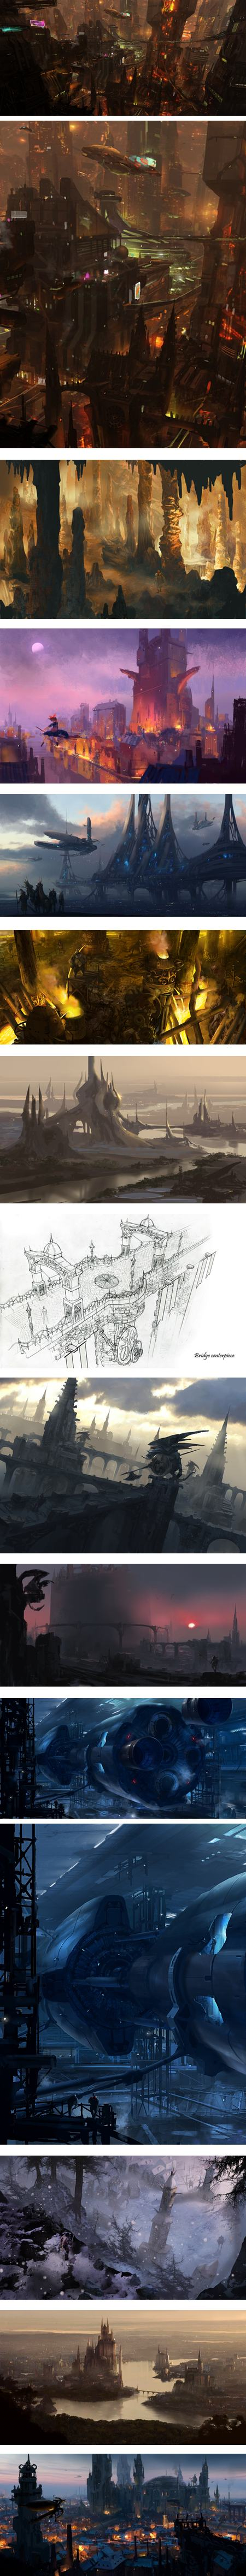 Charles Lee, visual development artist